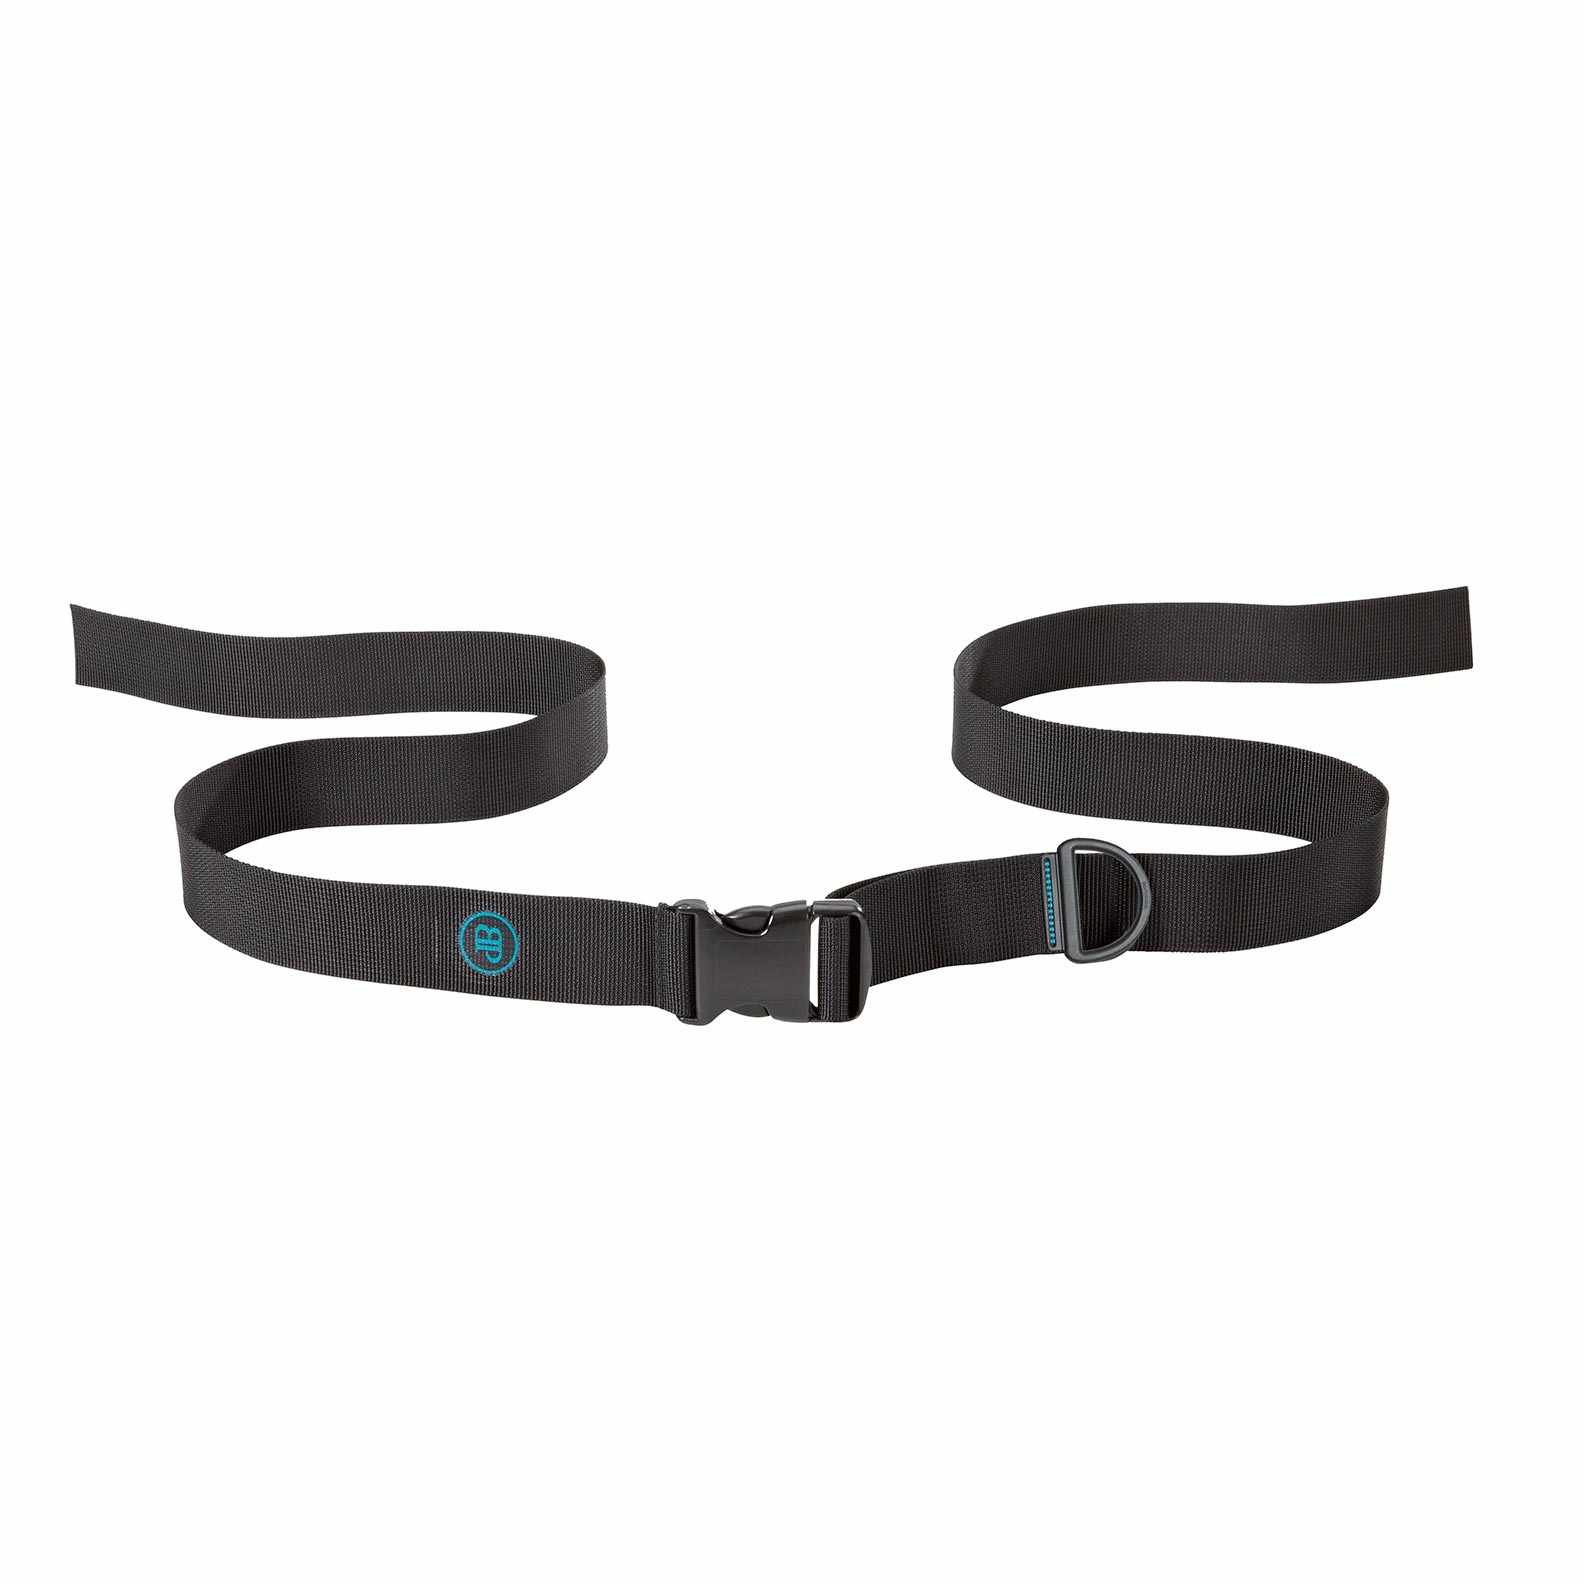 Bodypoint center-pull two point non-padded hip belt with side release buckle